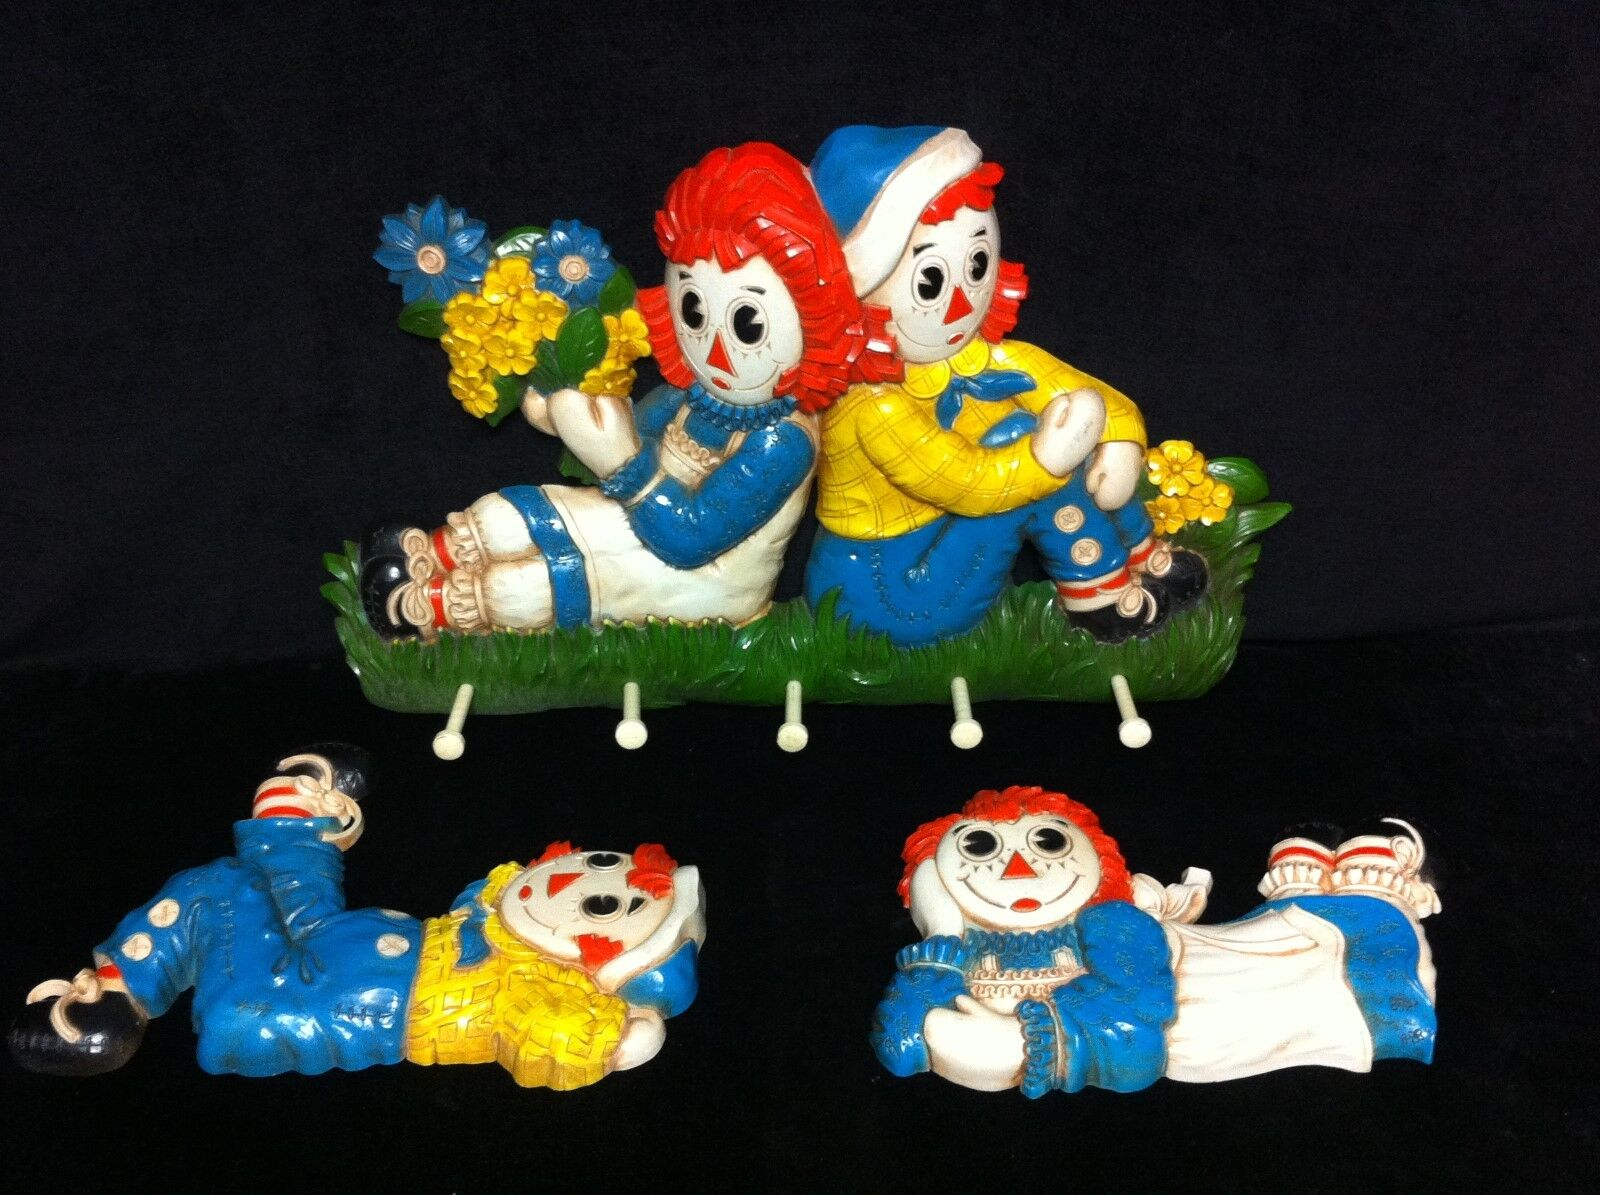 Vintage 1977 Bobbs Merrill Raggedy Ann and Andy Wall Plaque Art 7505 7506 & 7508